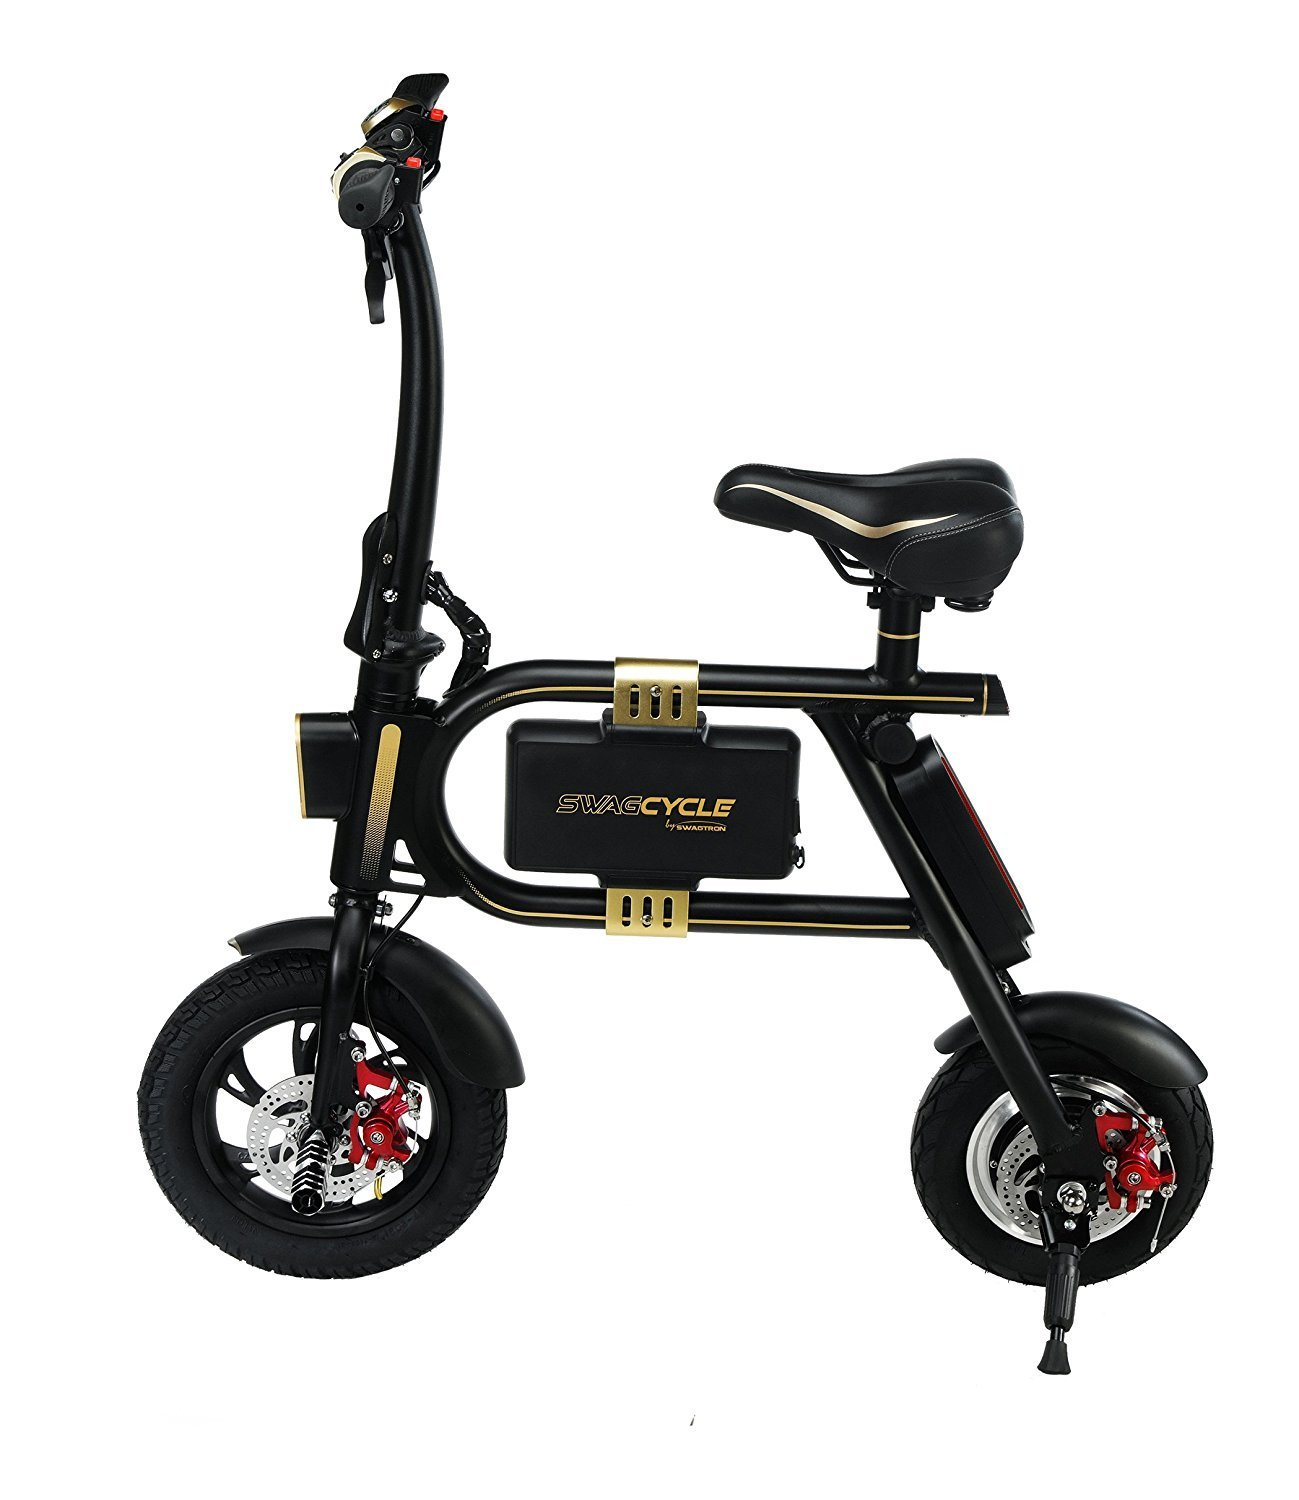 2. Swagtron SwagCycle E-Bike Folding Electric Bike